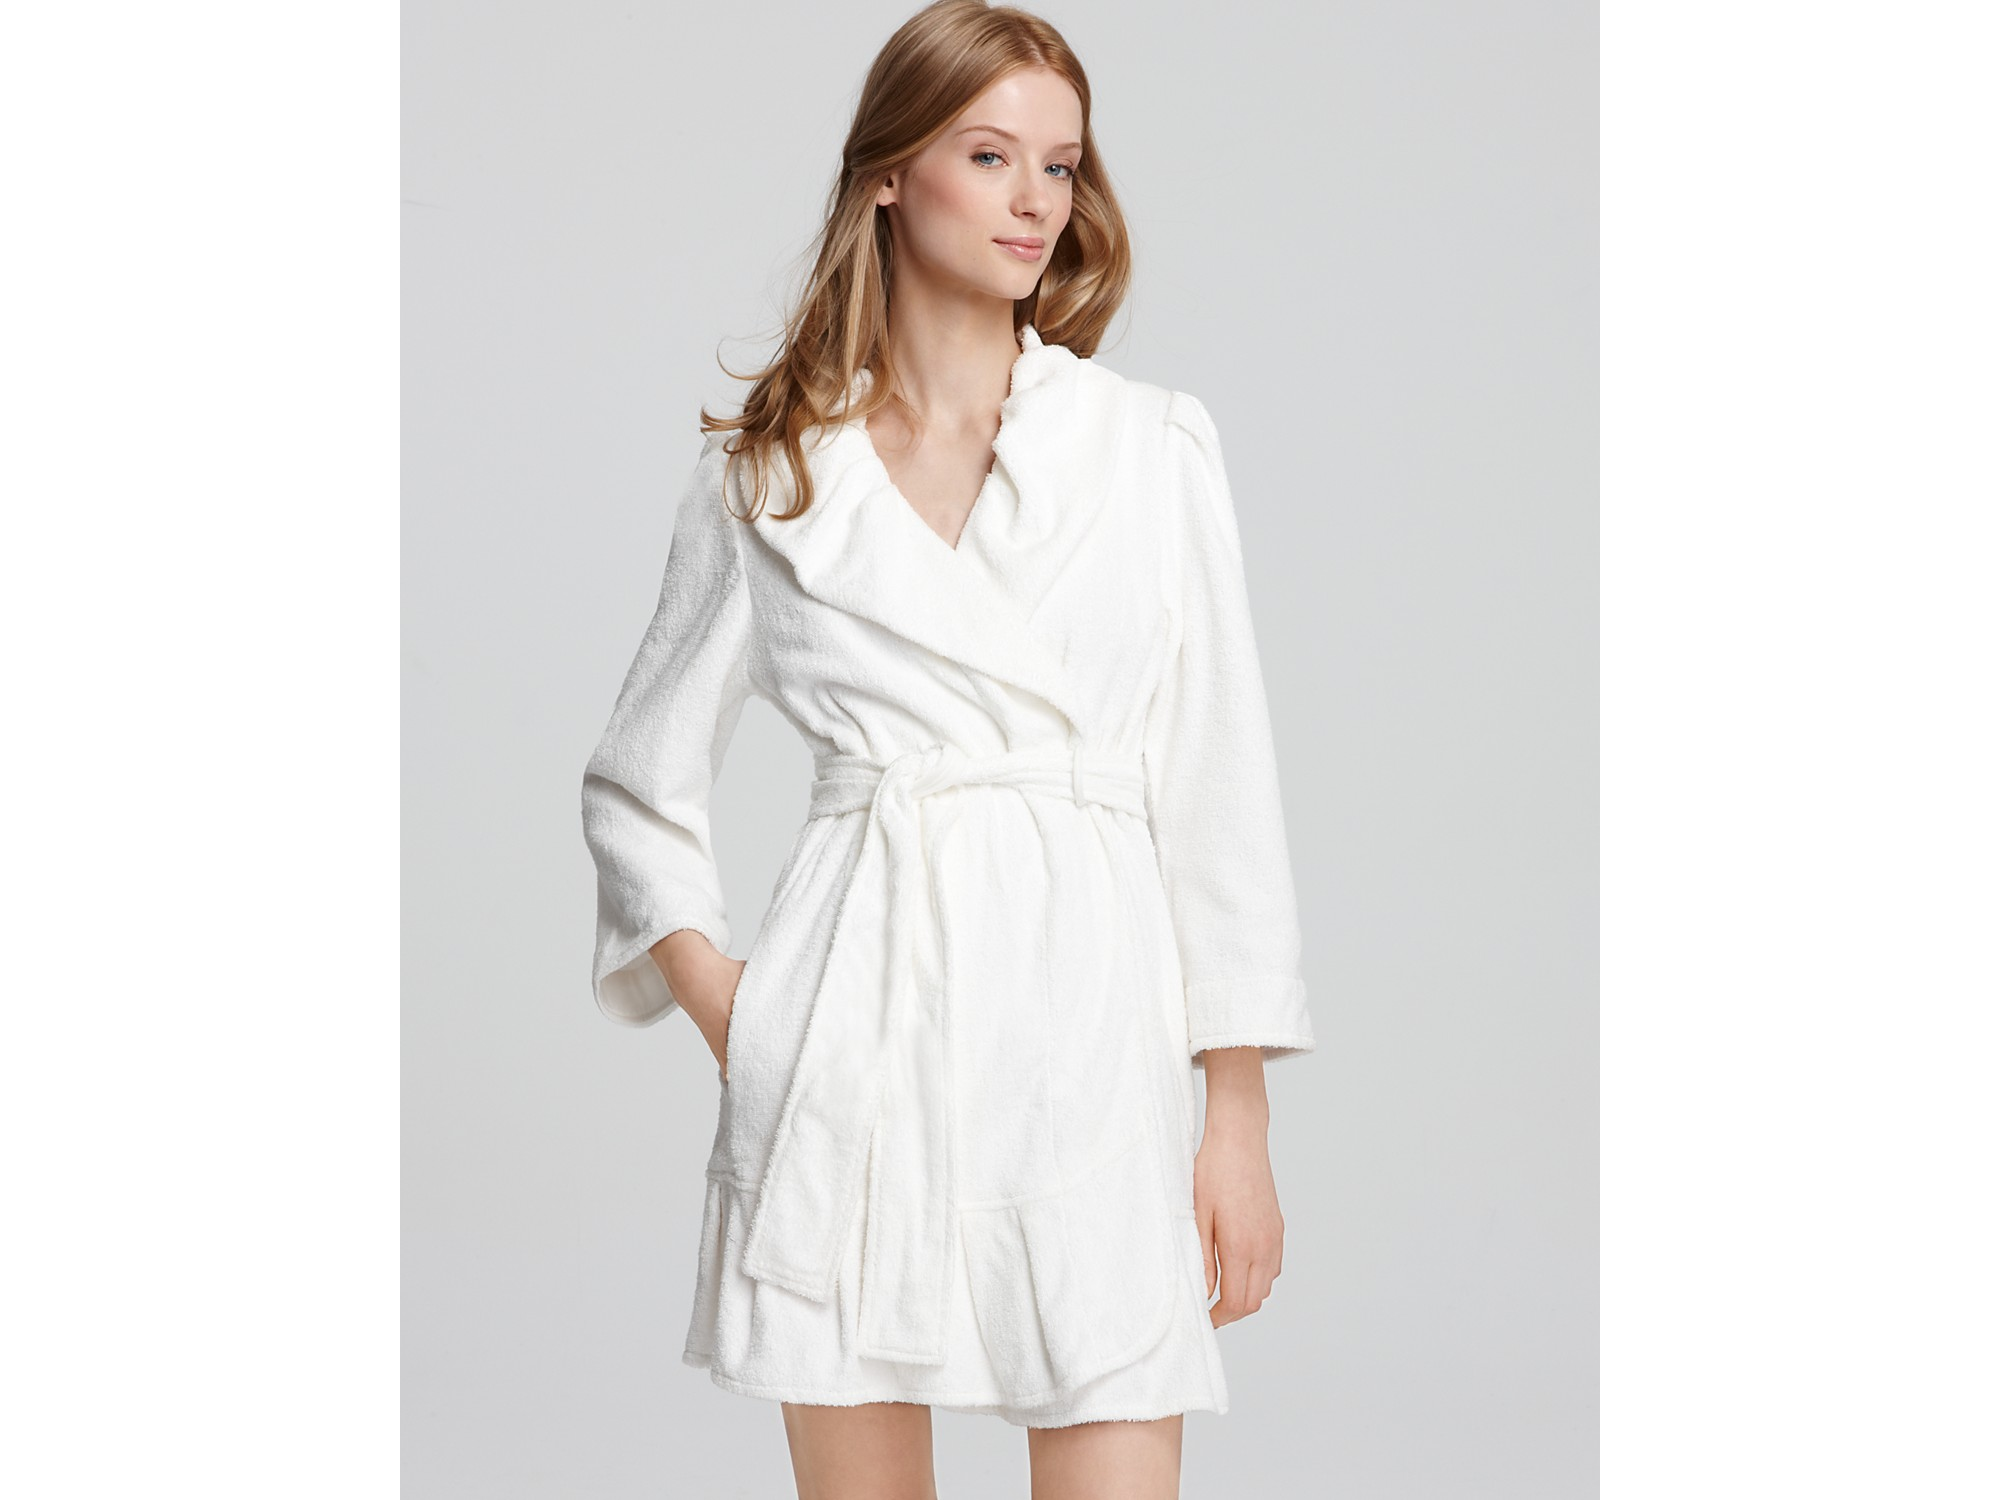 Betsey johnson loop terry mrs robe in white virgin white for Robes de mariage de betsey johnson